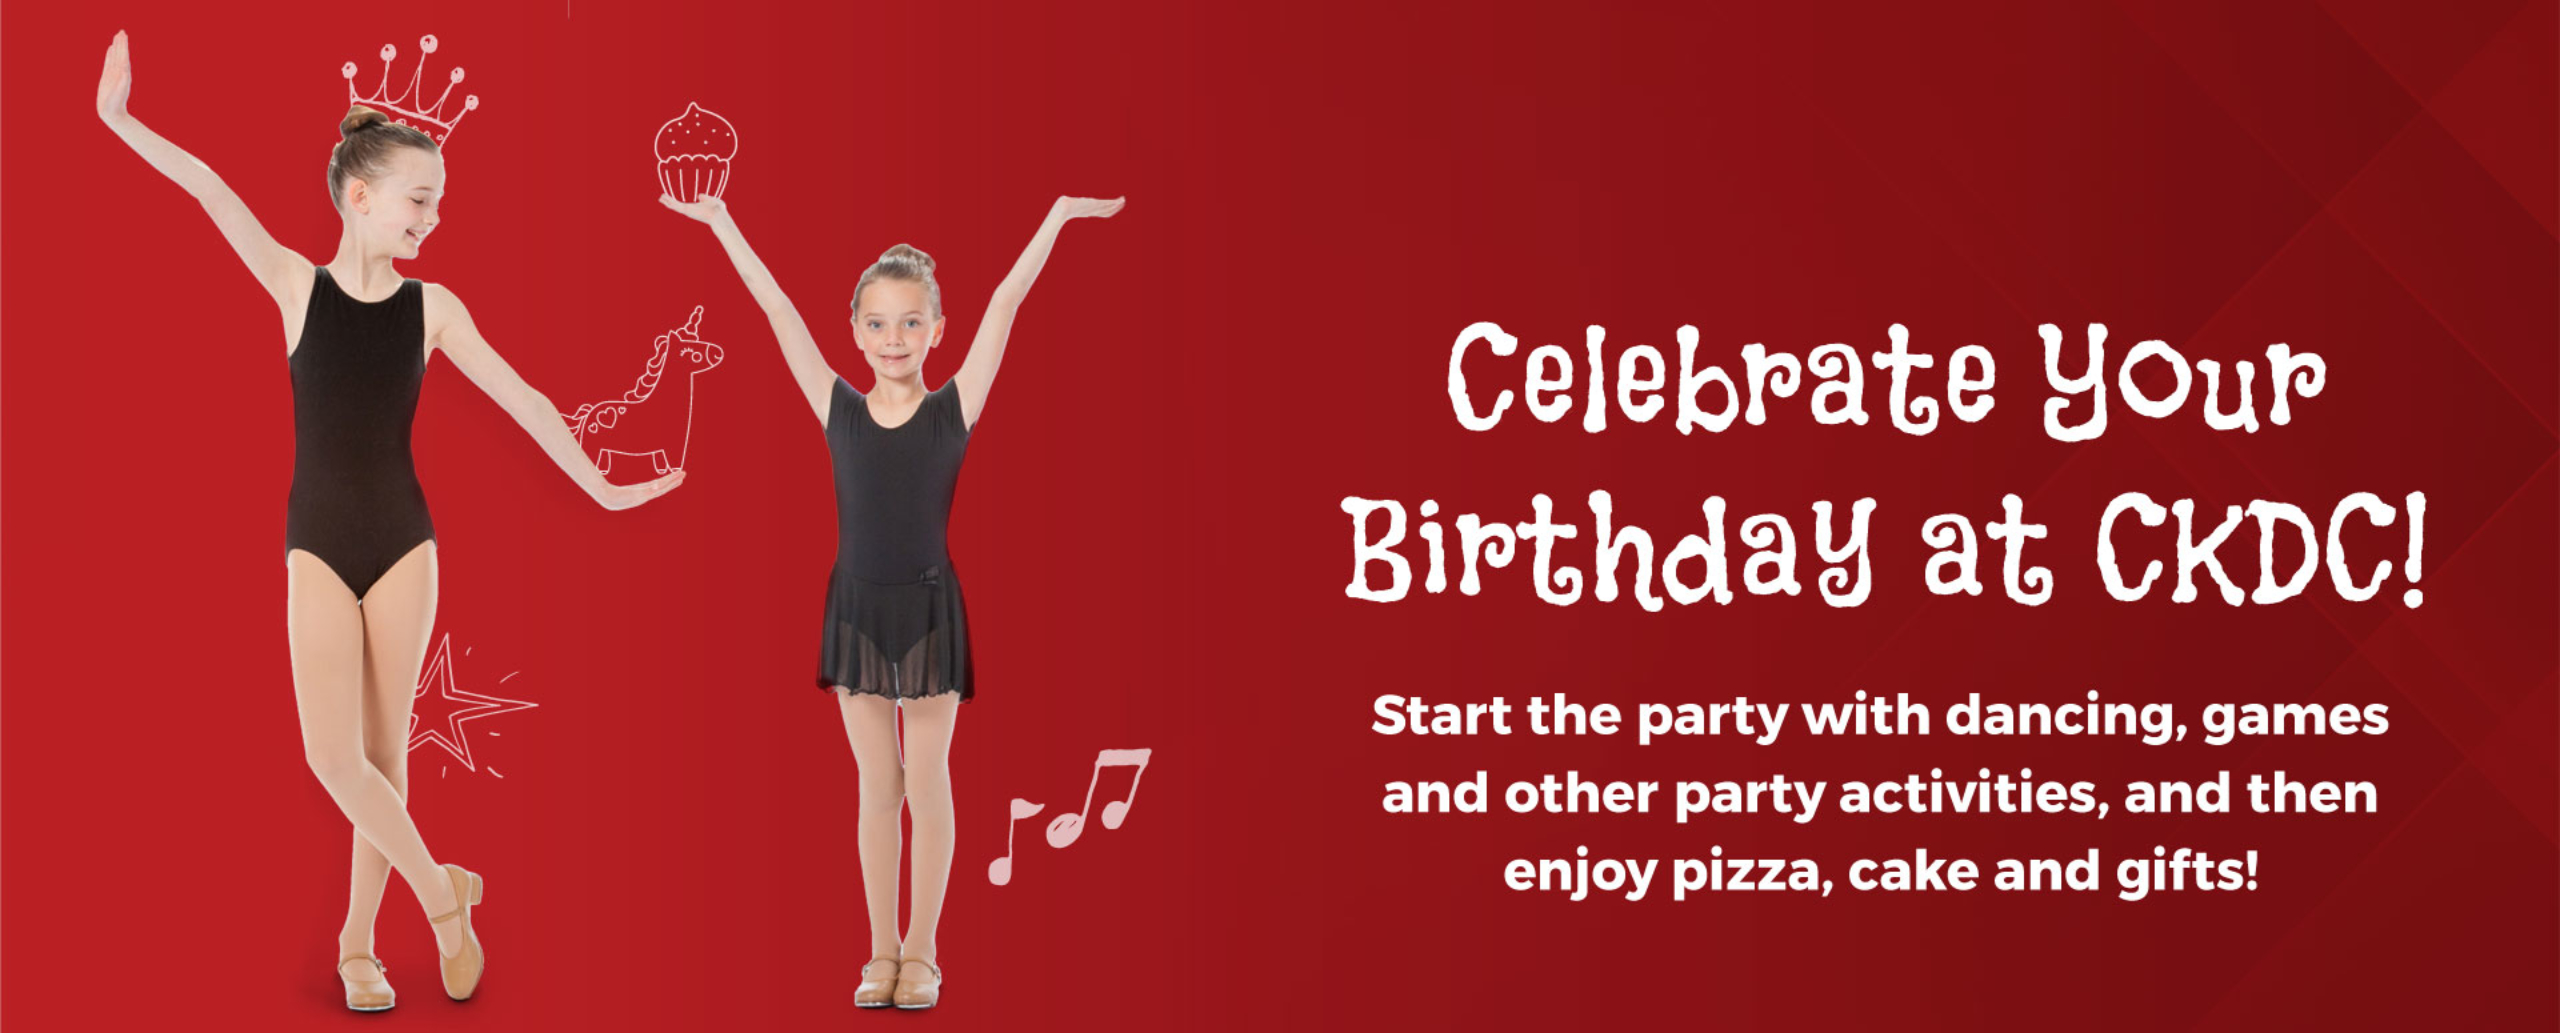 Celebrate Your Birthday at CKDC